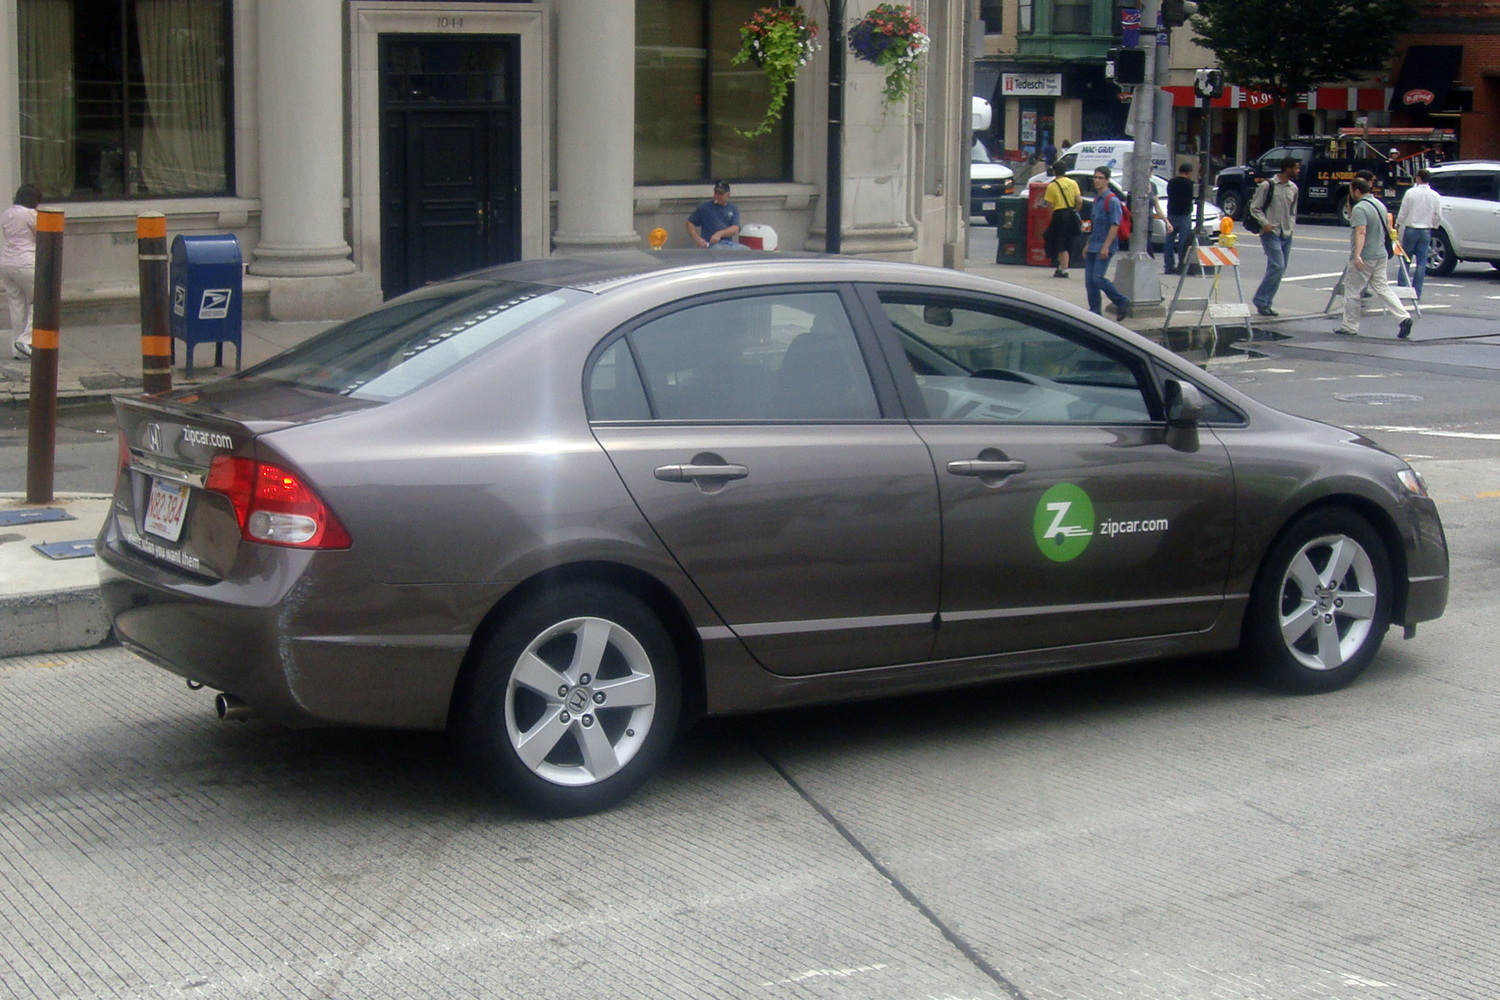 Zipcar vehicle in Boston, MA